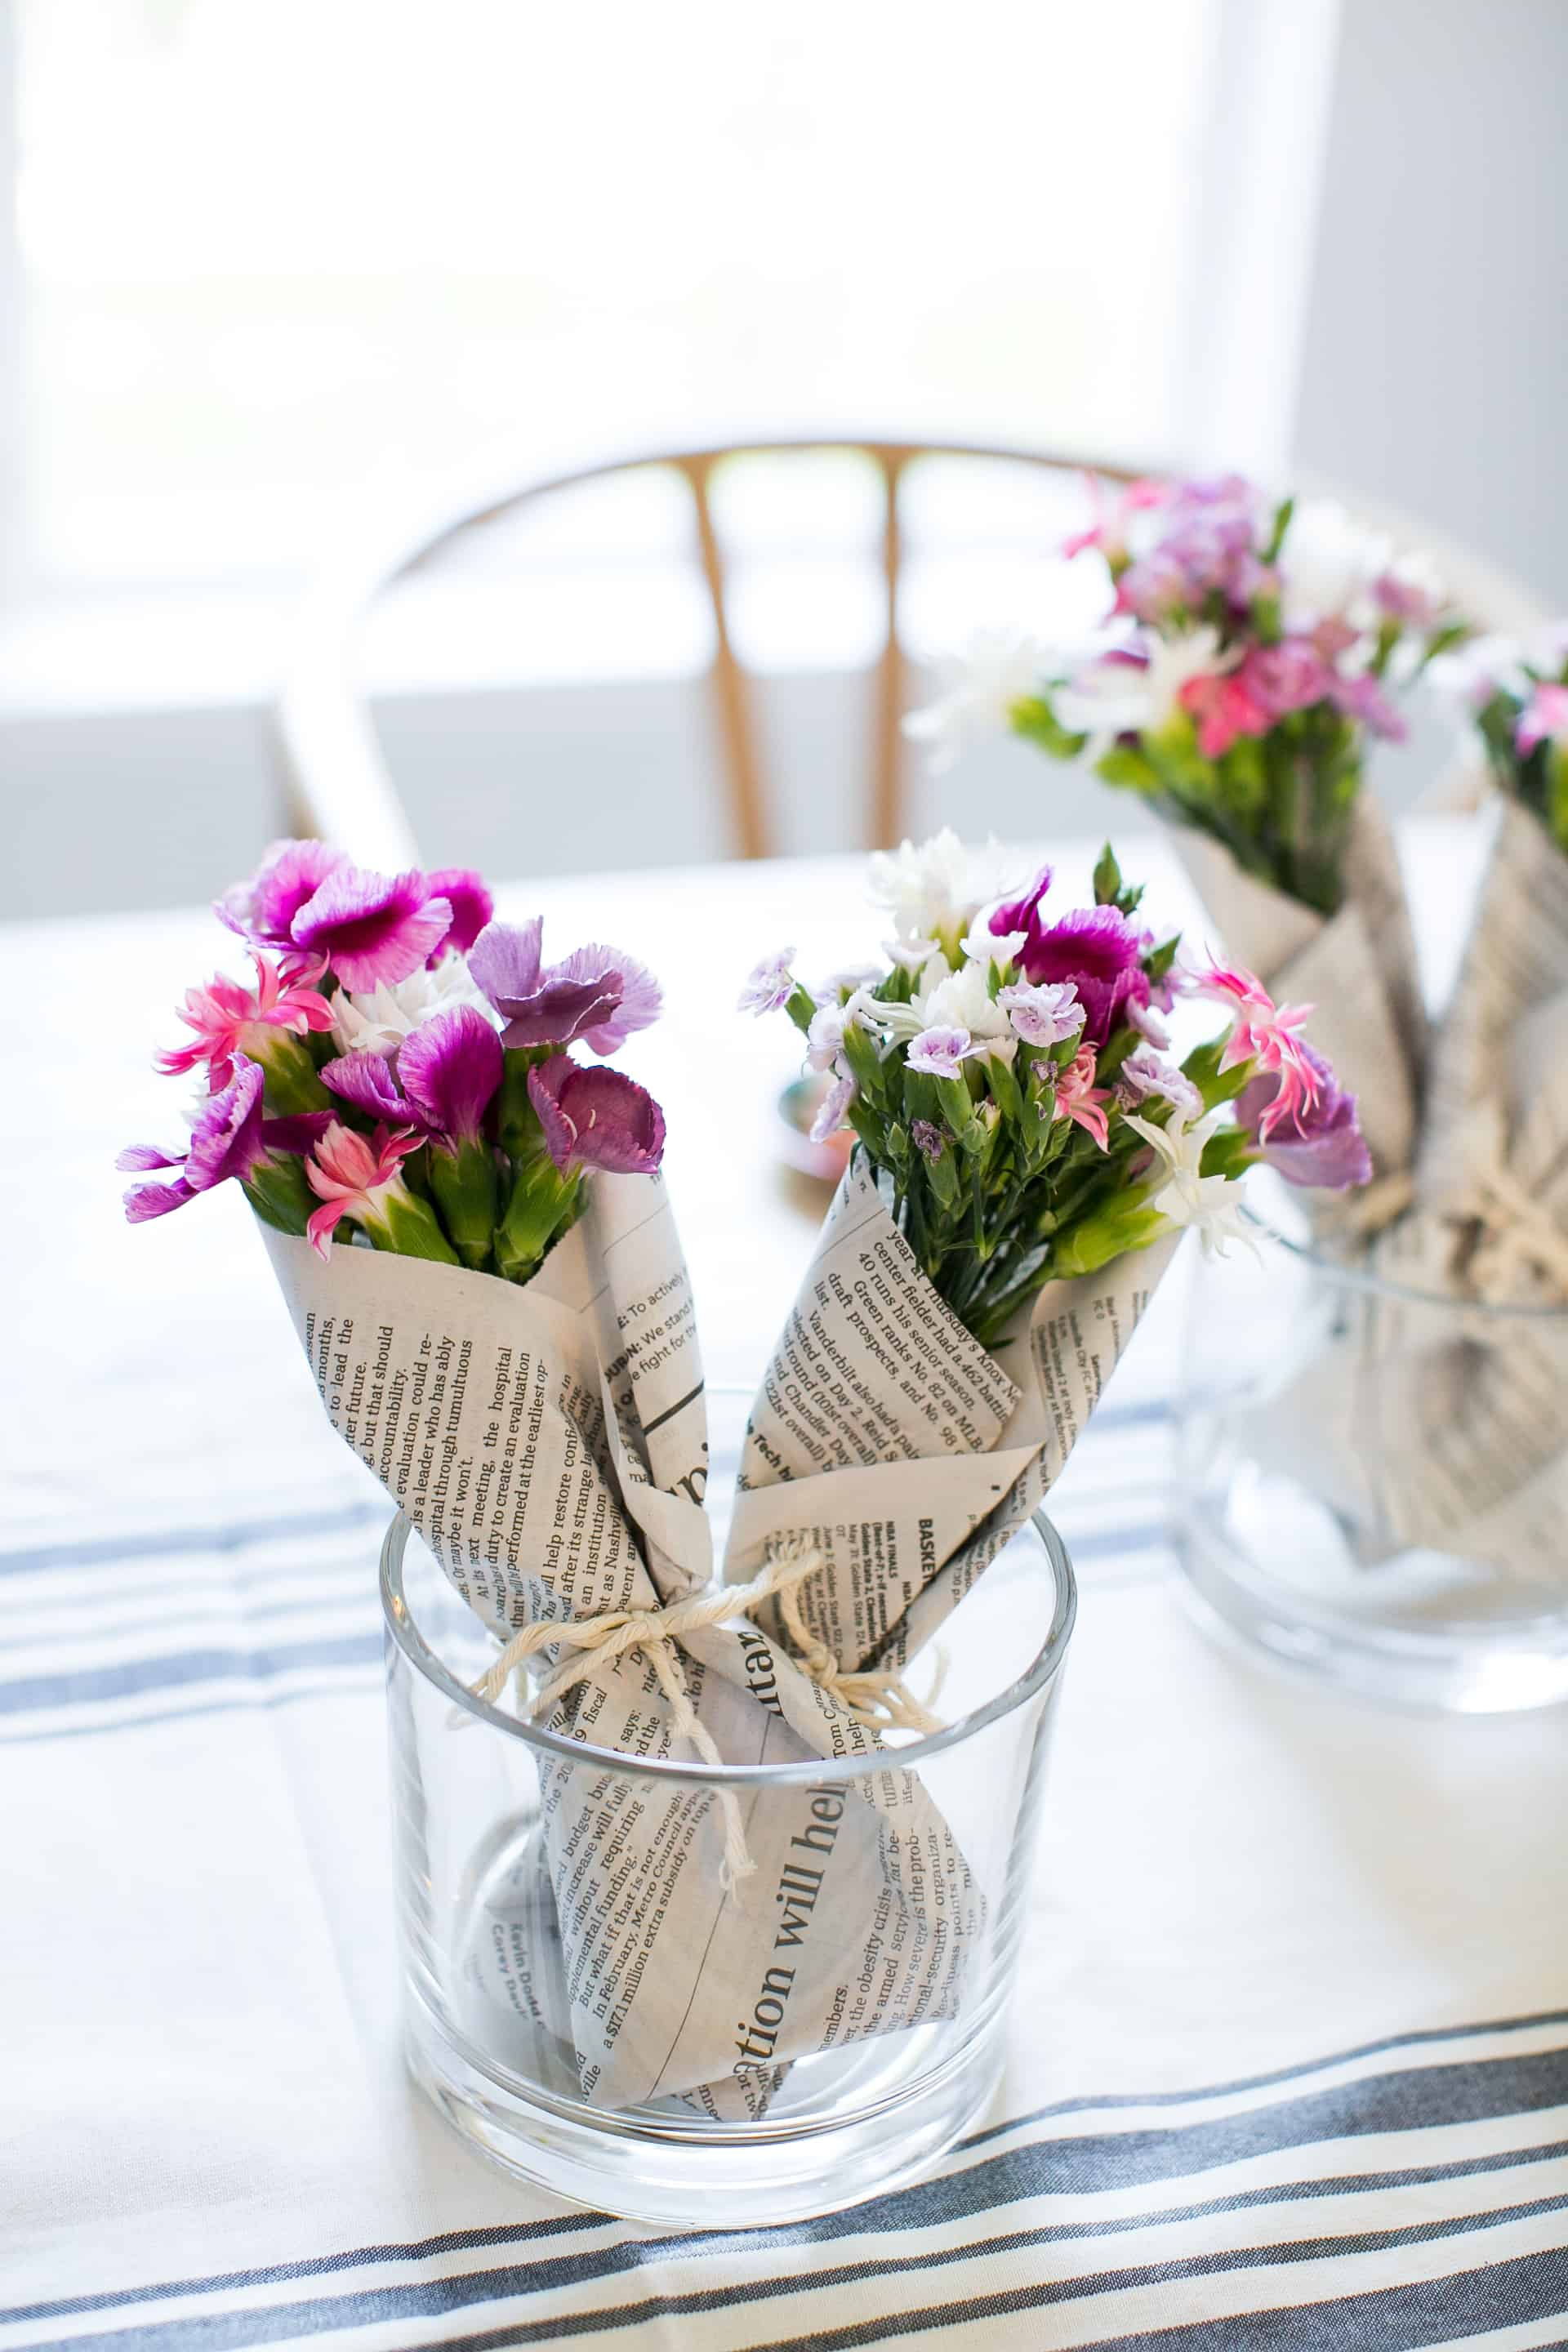 How to make mini bouquets with grocery store flowers hello glow how to make mini bouquets with grocery store flowers izmirmasajfo